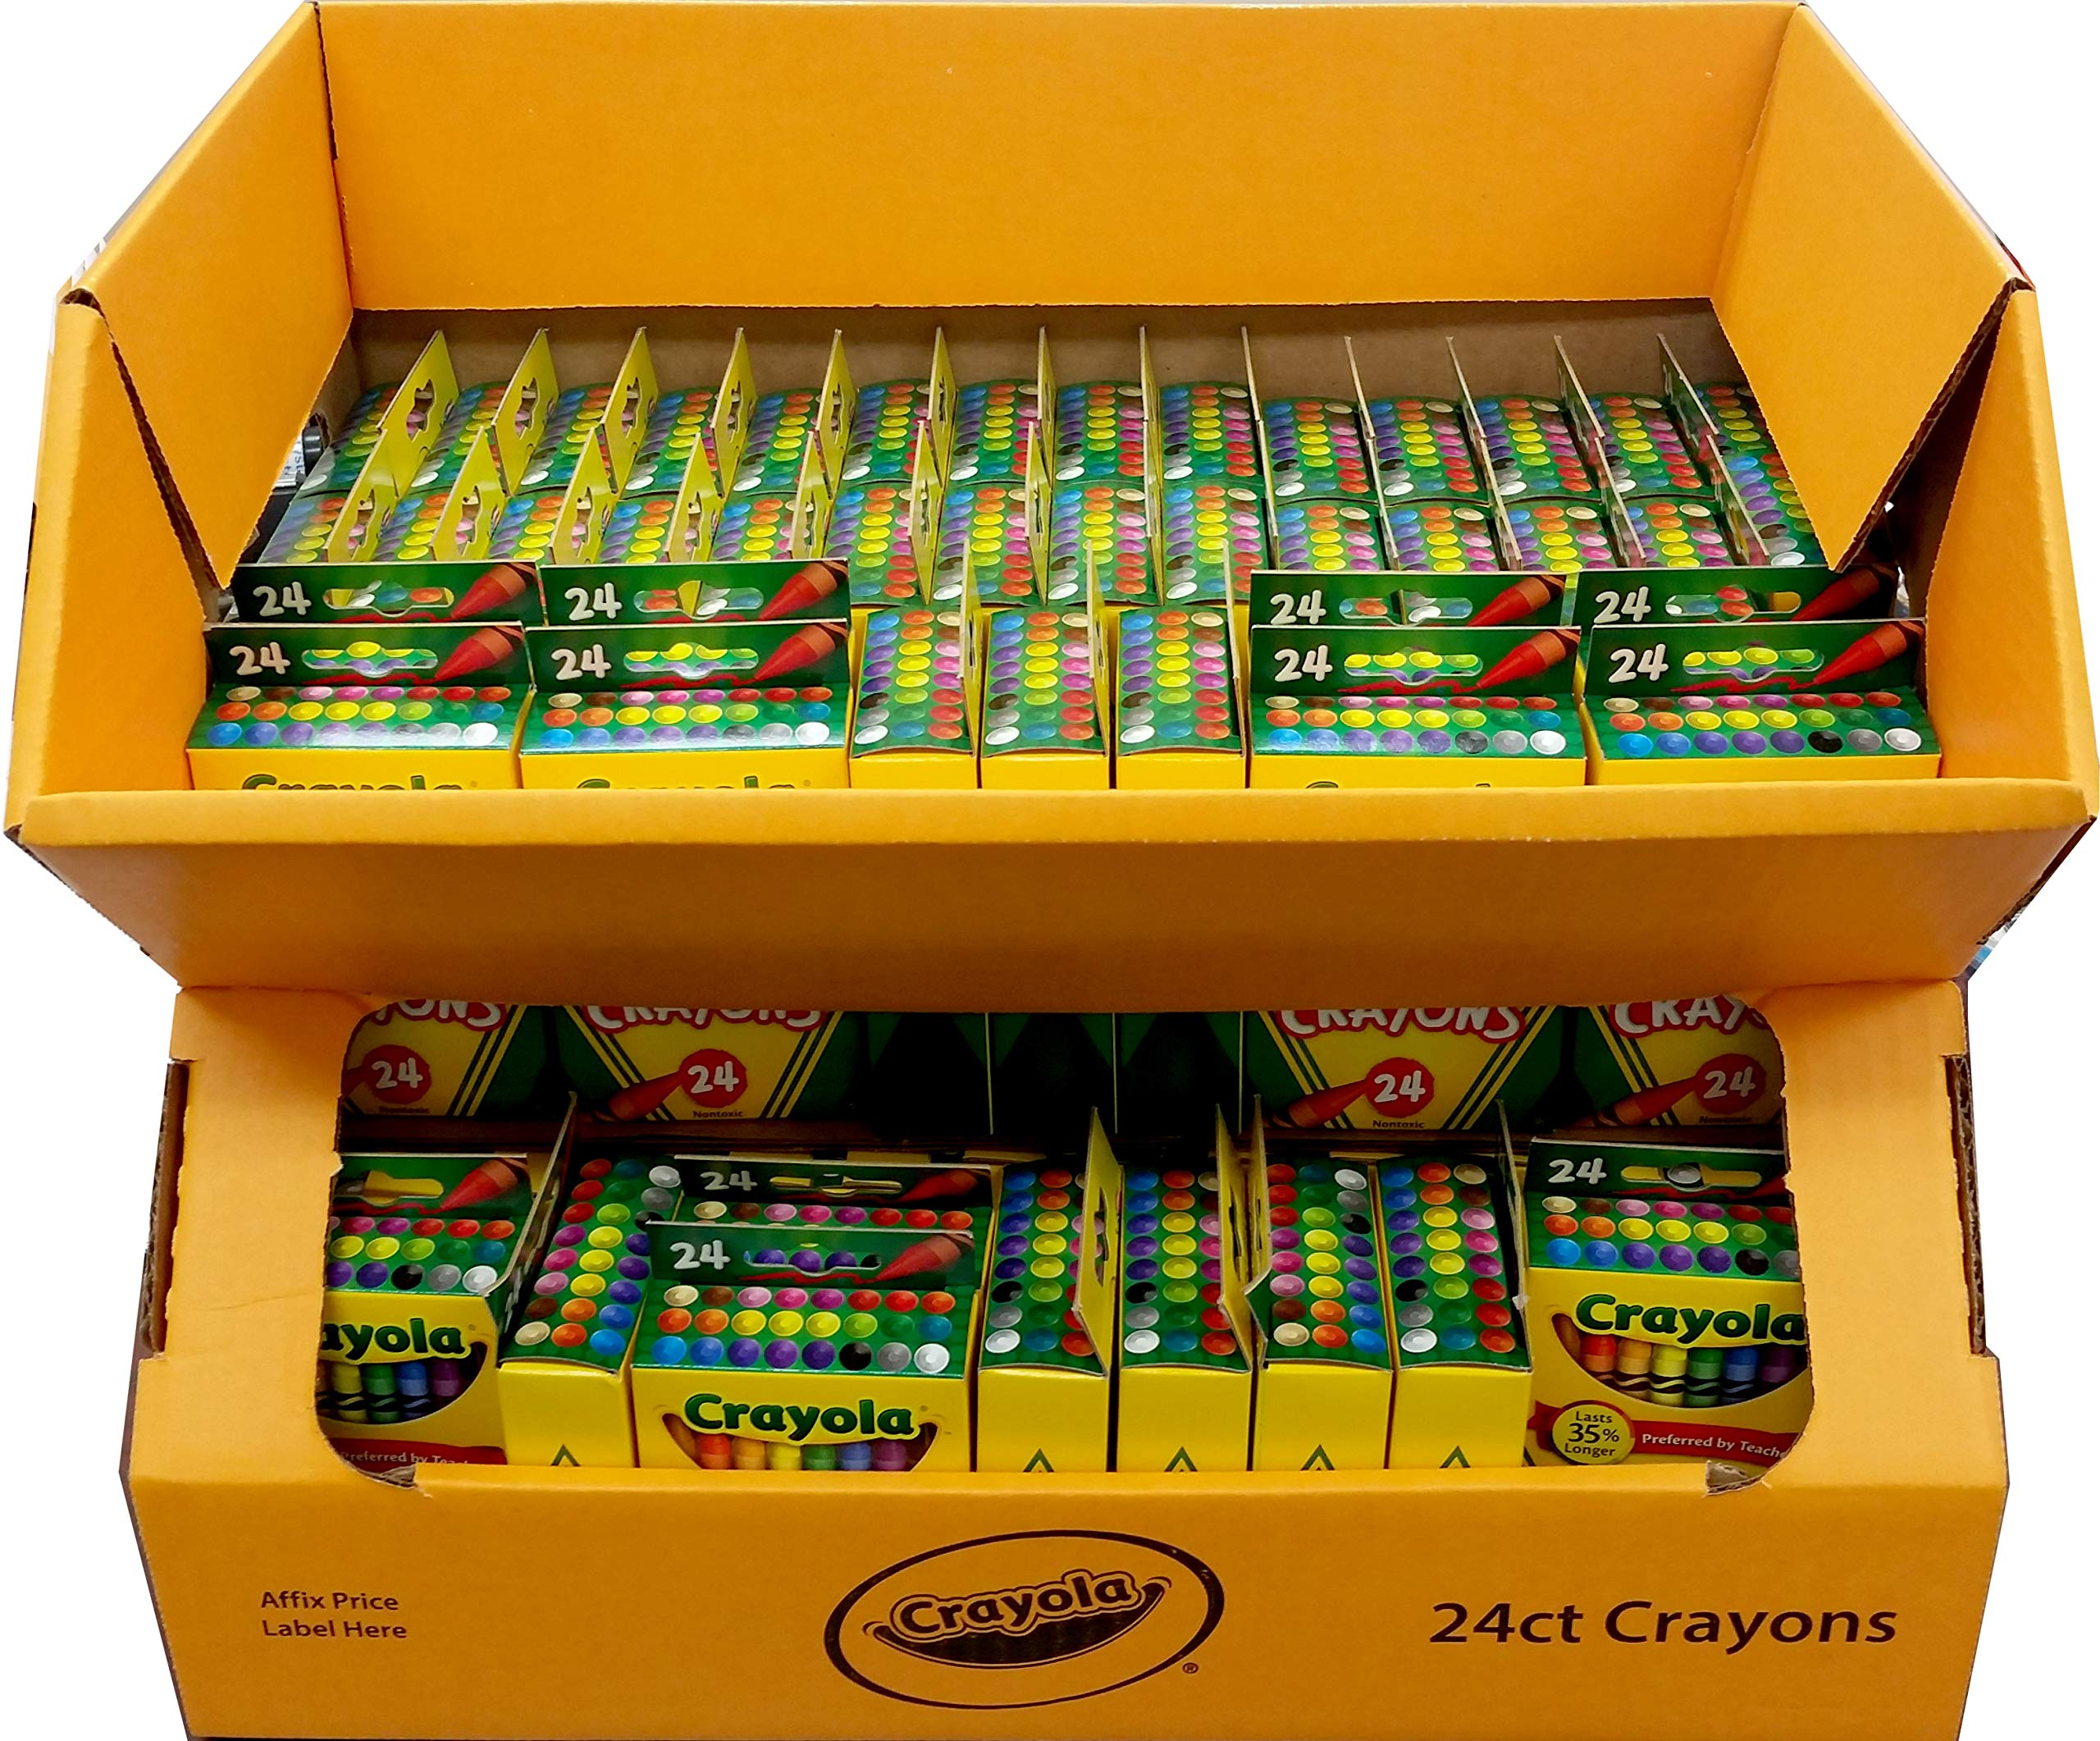 Crayola Crayon 24 Display, Case Pack of 90, Ideal for Bulk Buyers